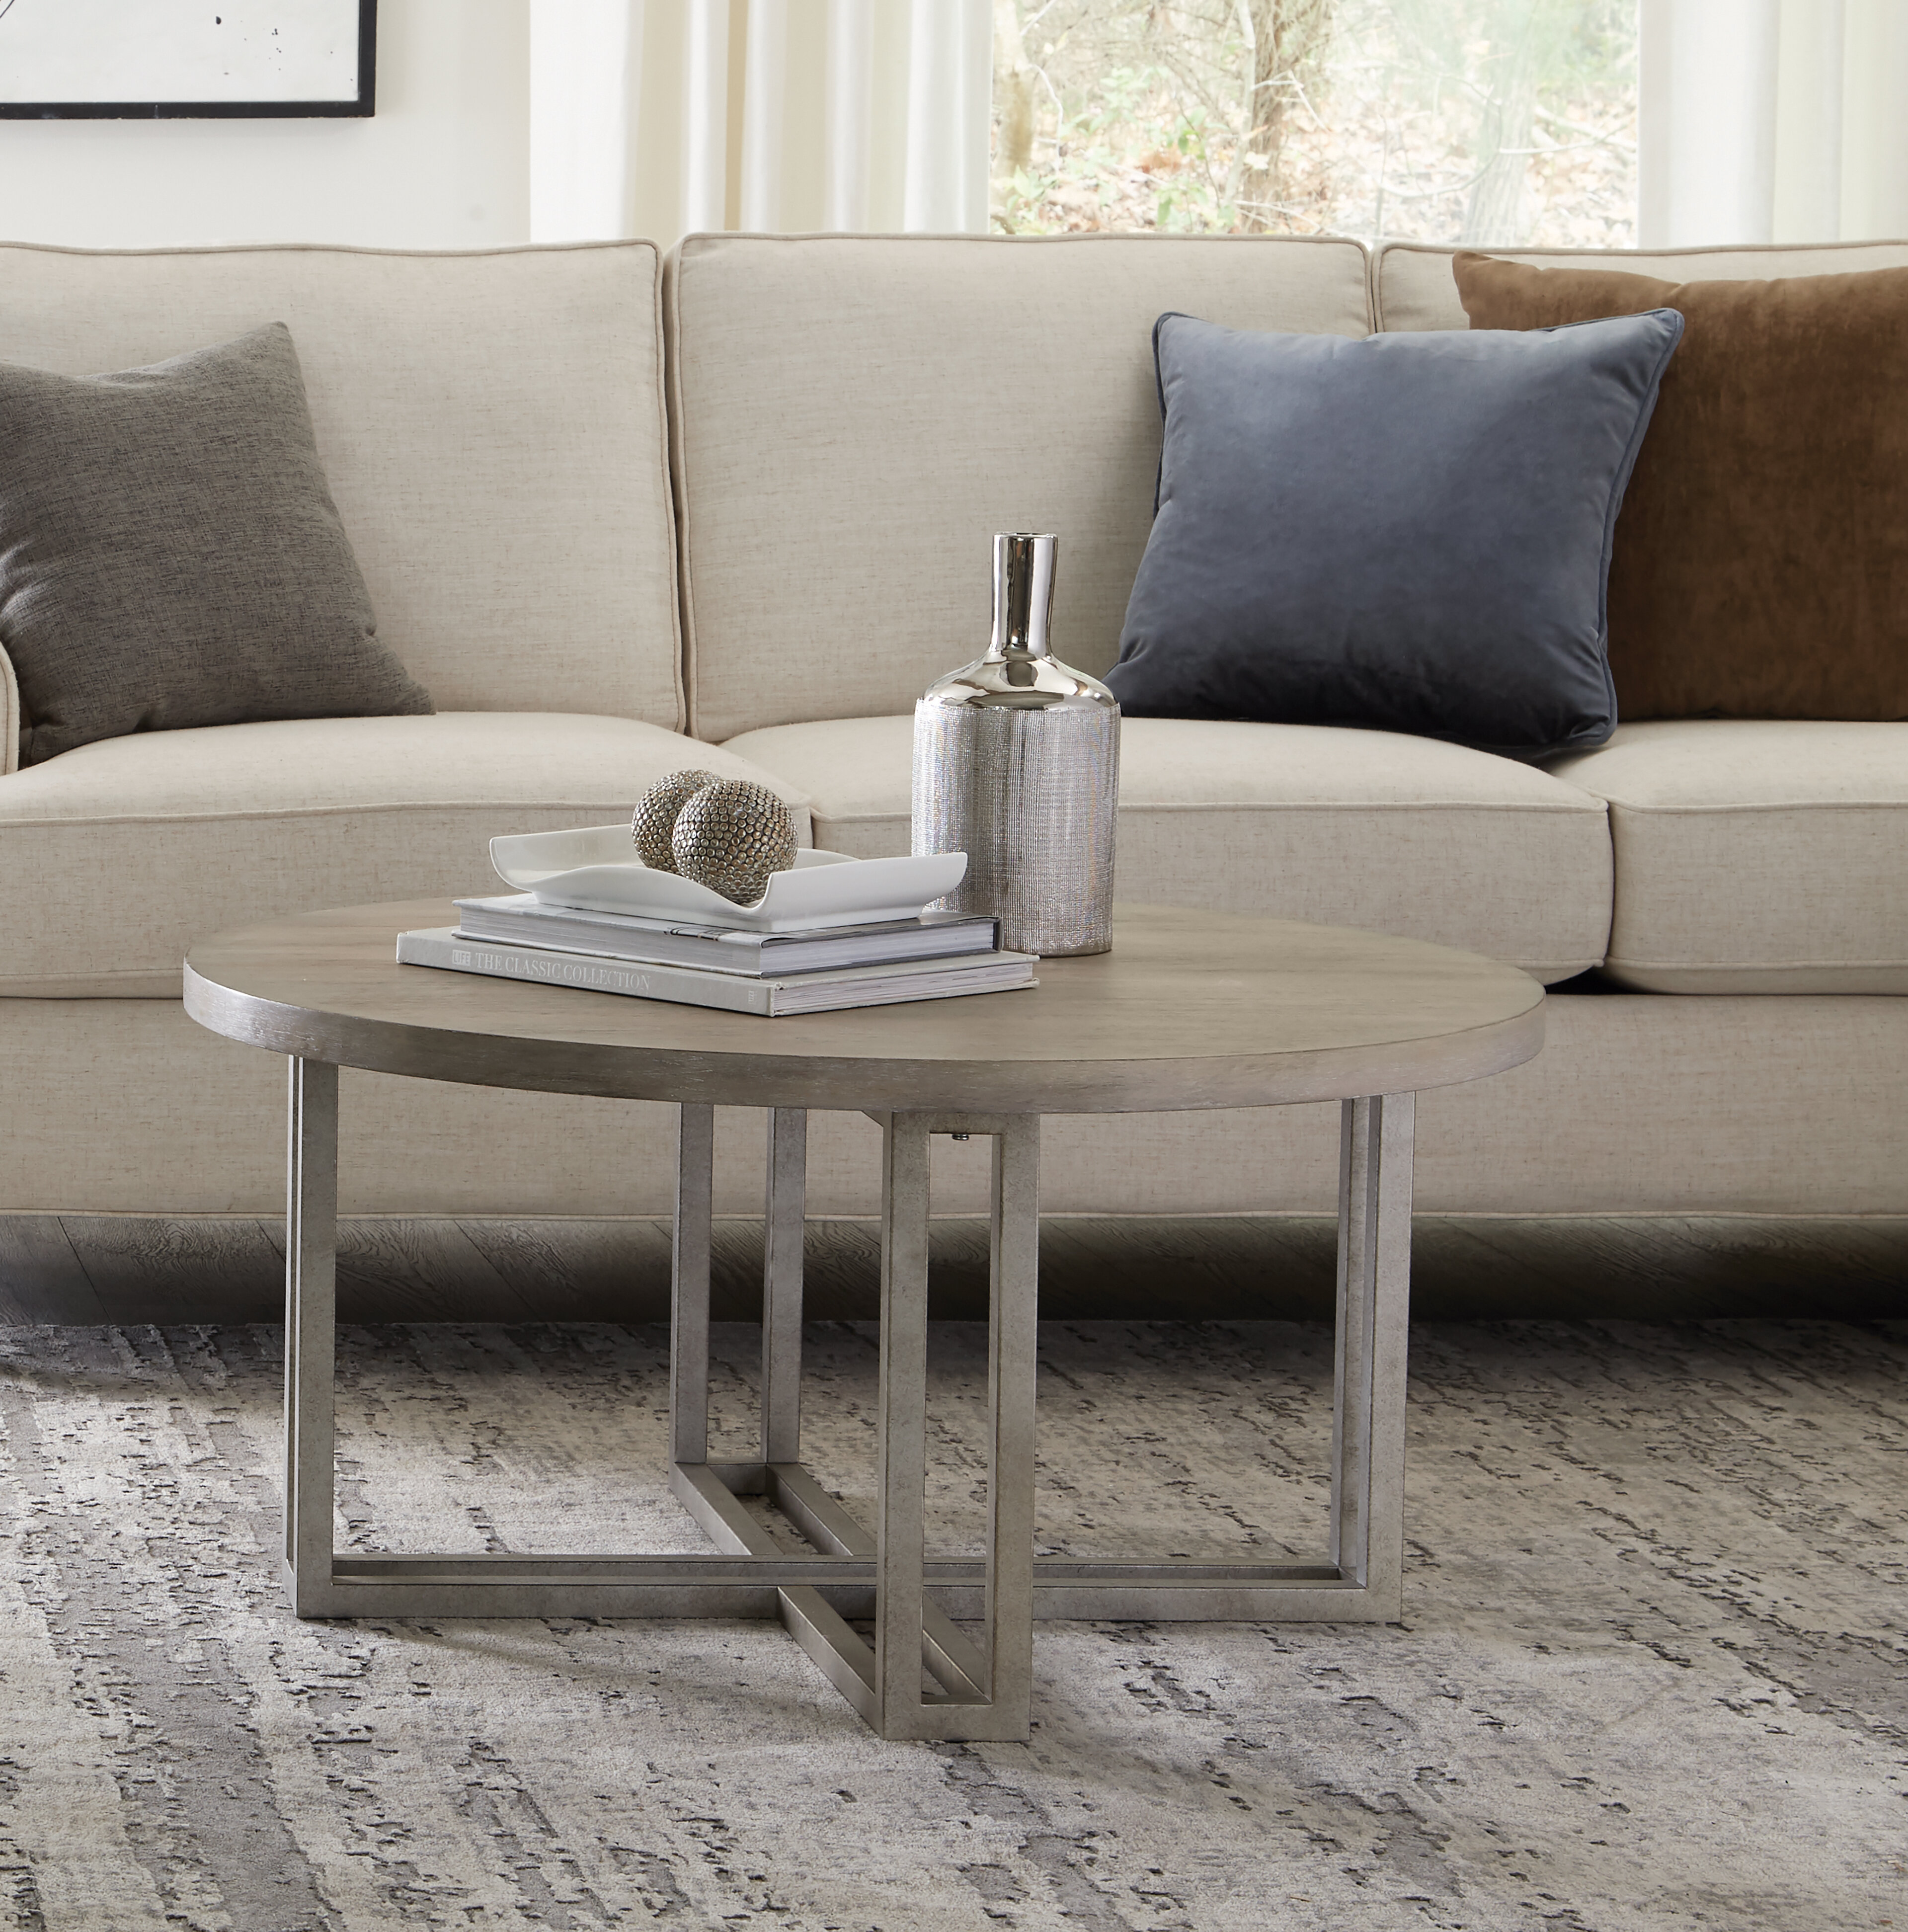 Gracie Oaks Raffles Cross Legs Coffee Table Wayfair